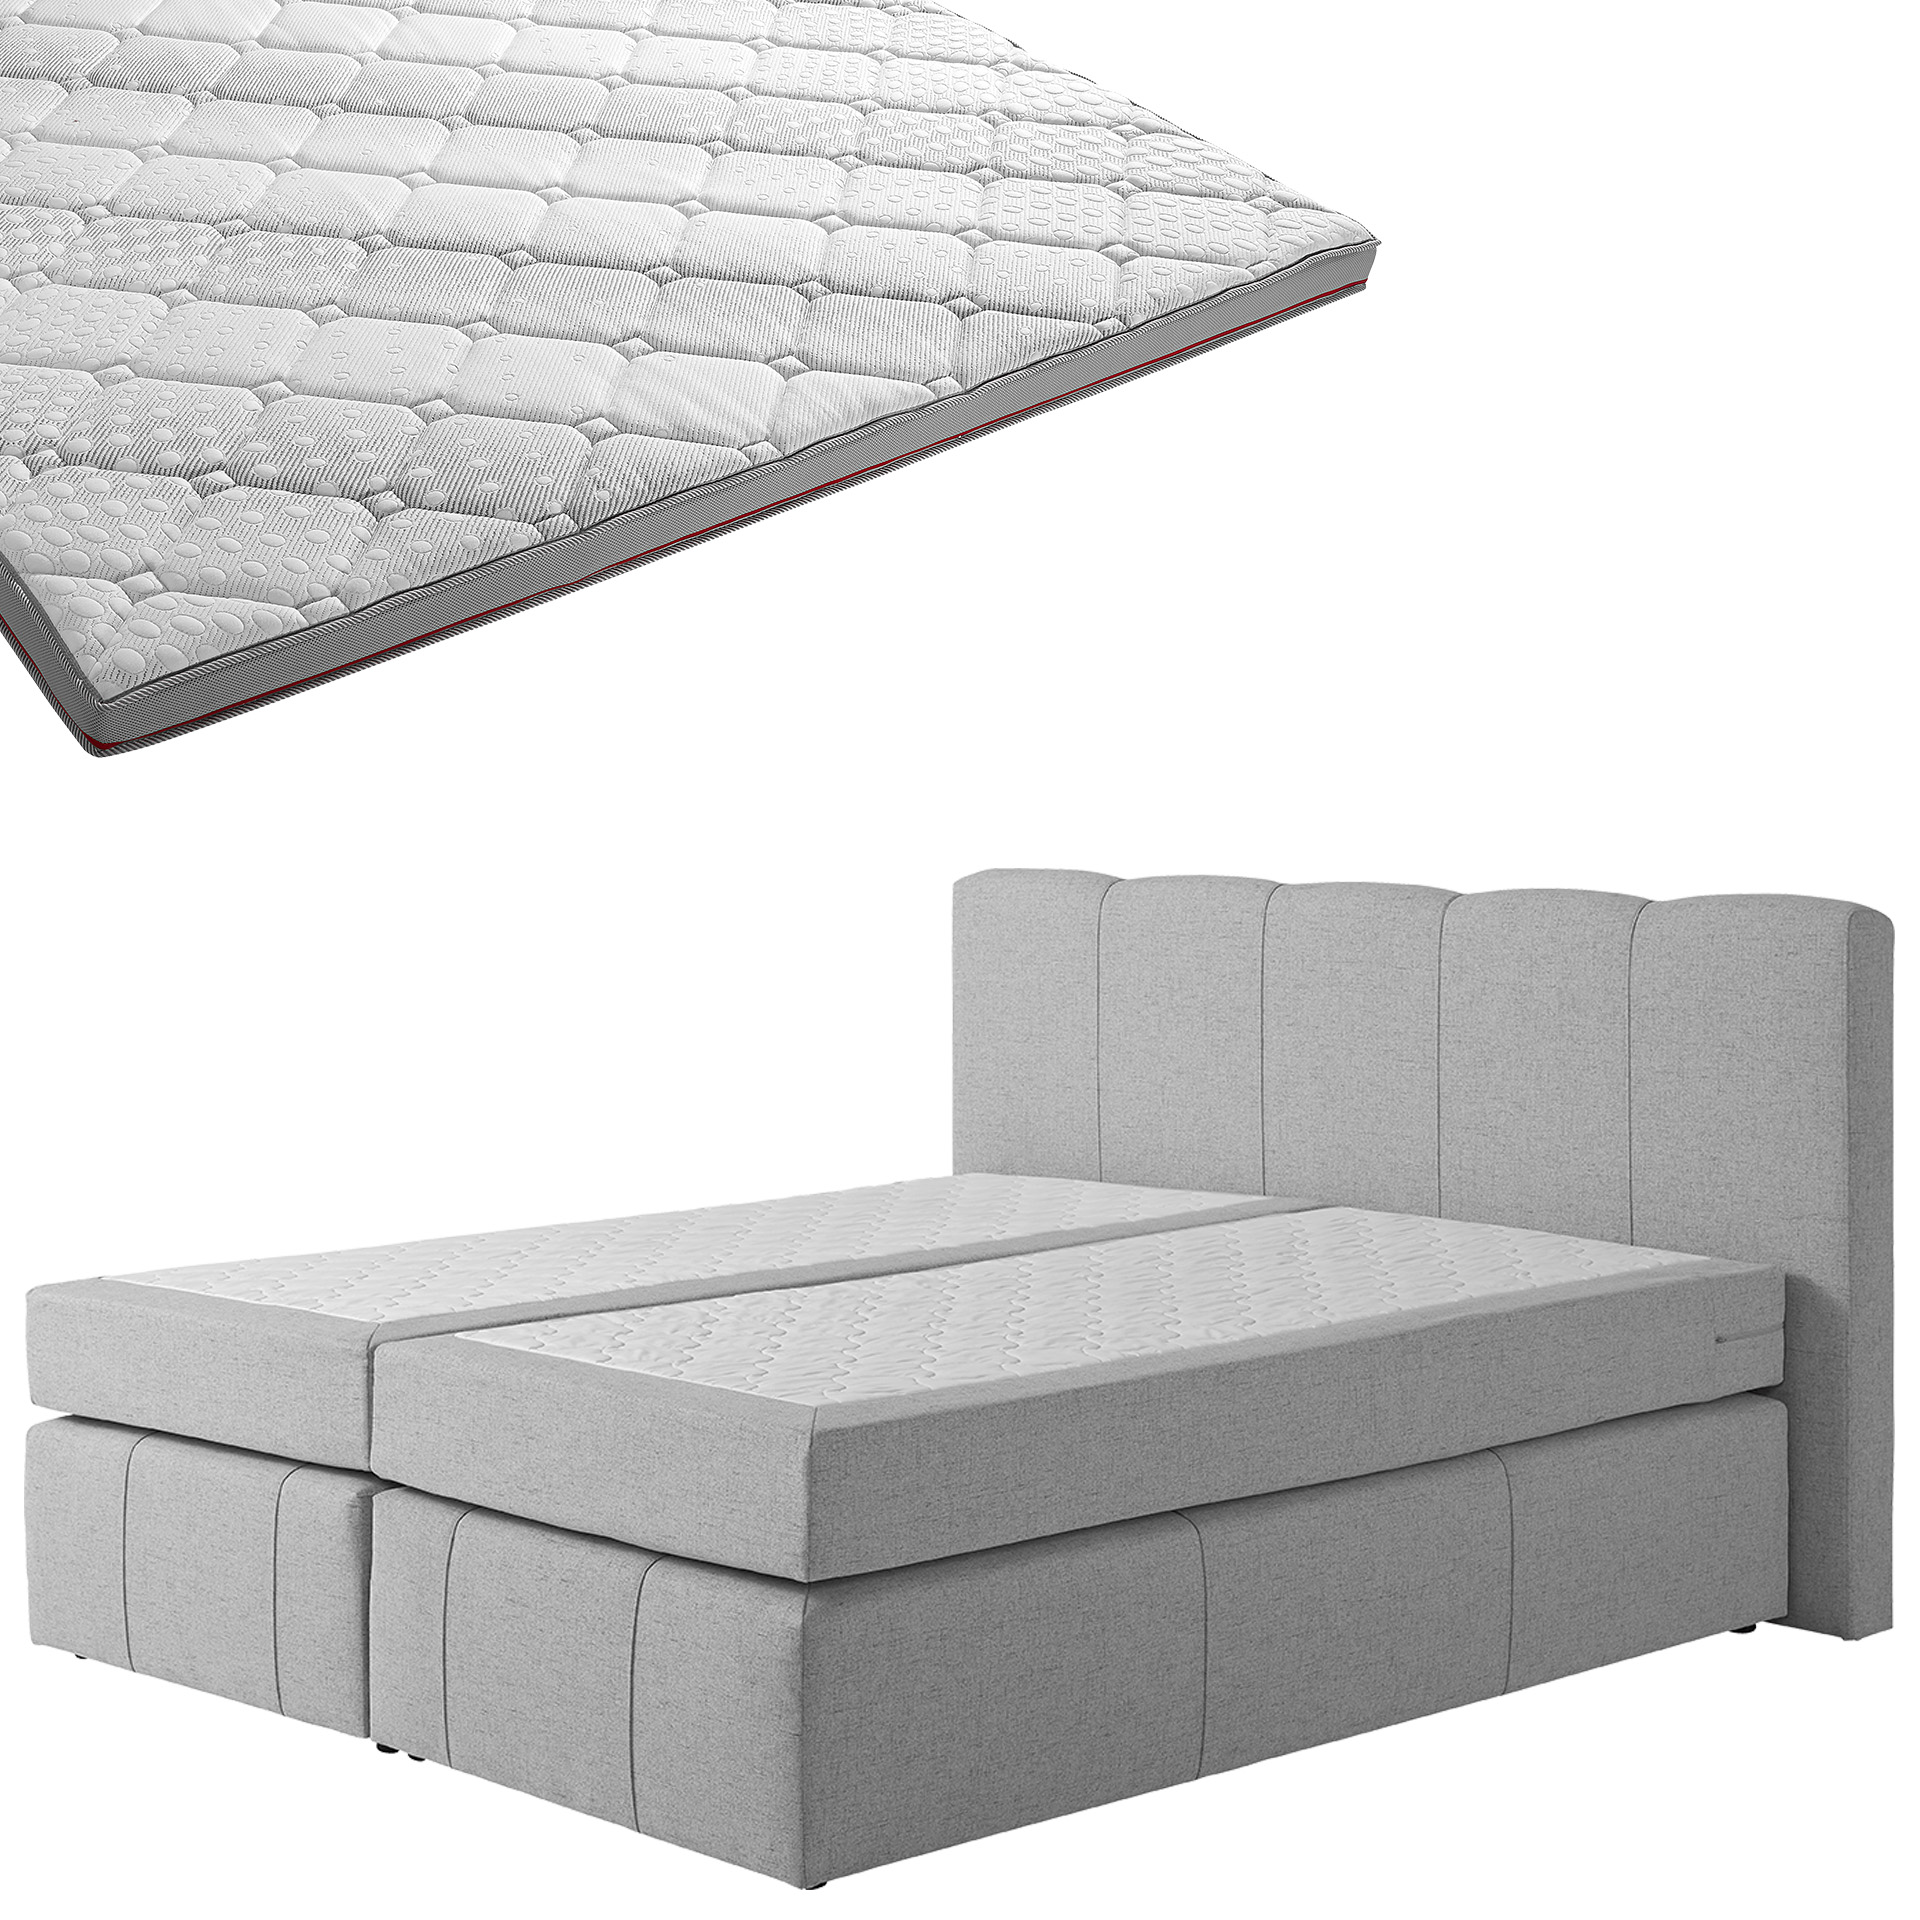 Boxspringbett-Set SUPERDREAM Kolding/SUPERDREAM Premium-Visko-Topper (180x200)